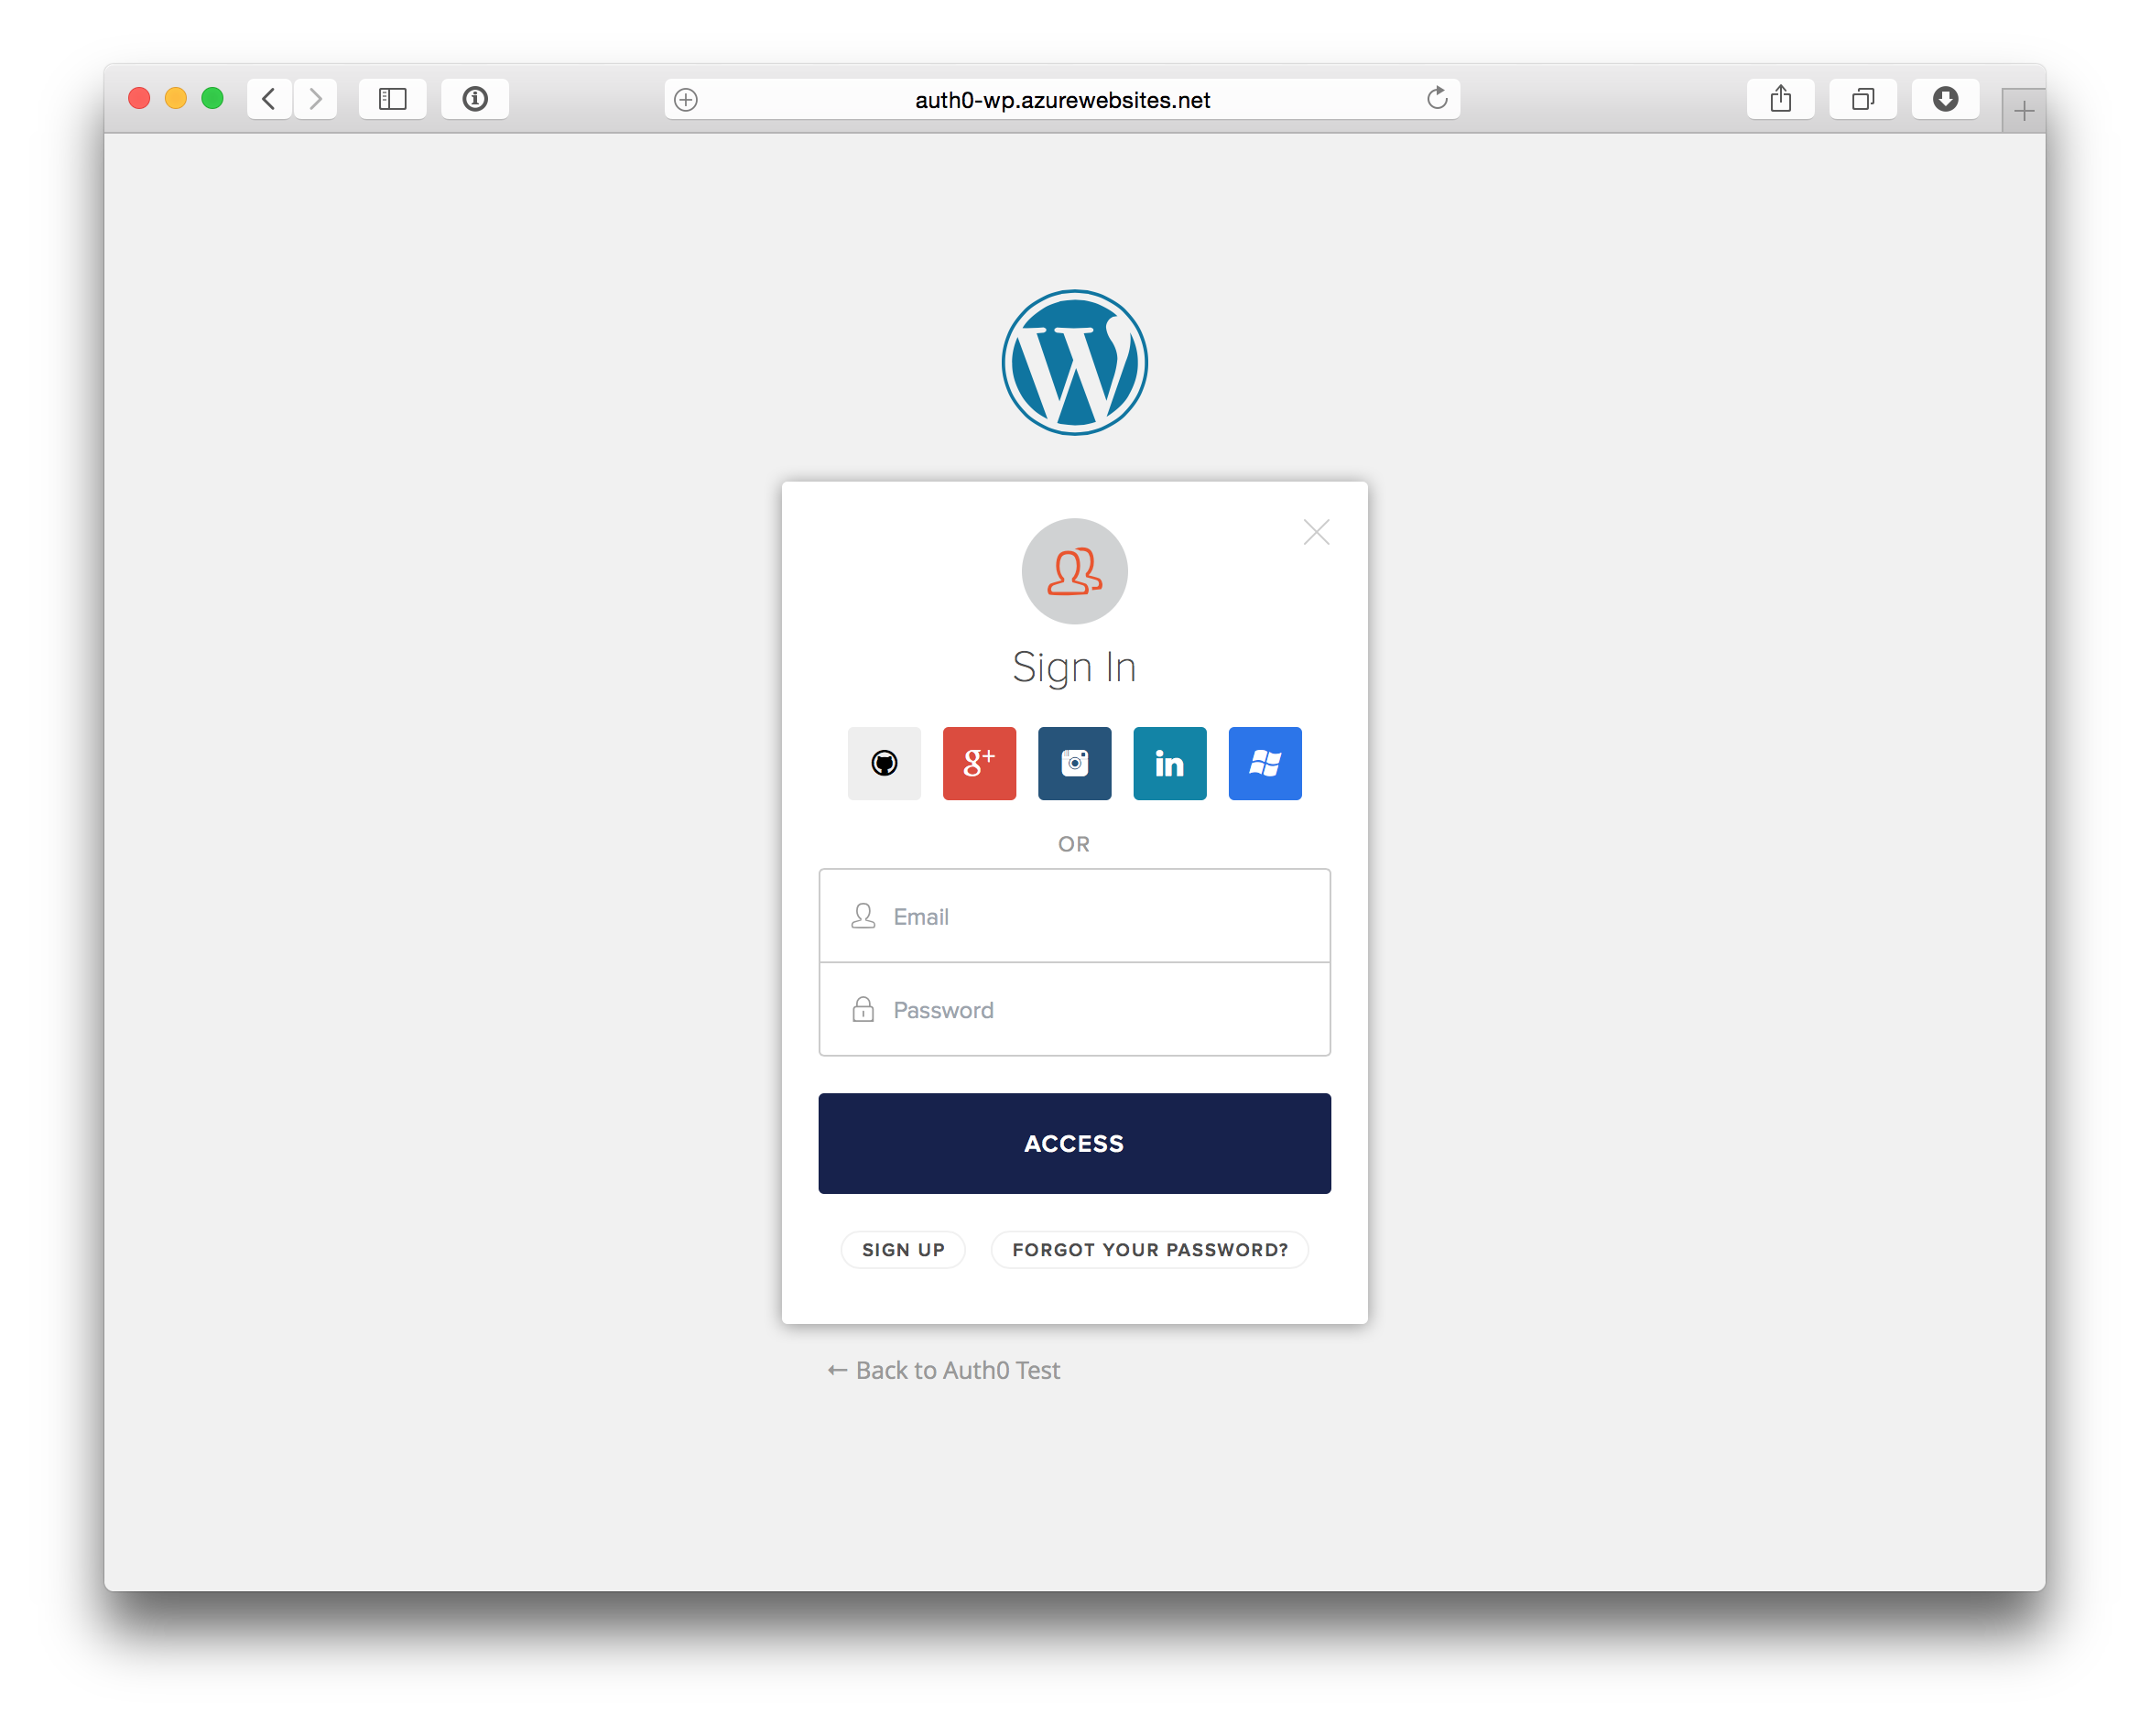 Log into a Wordpress site using social login provider